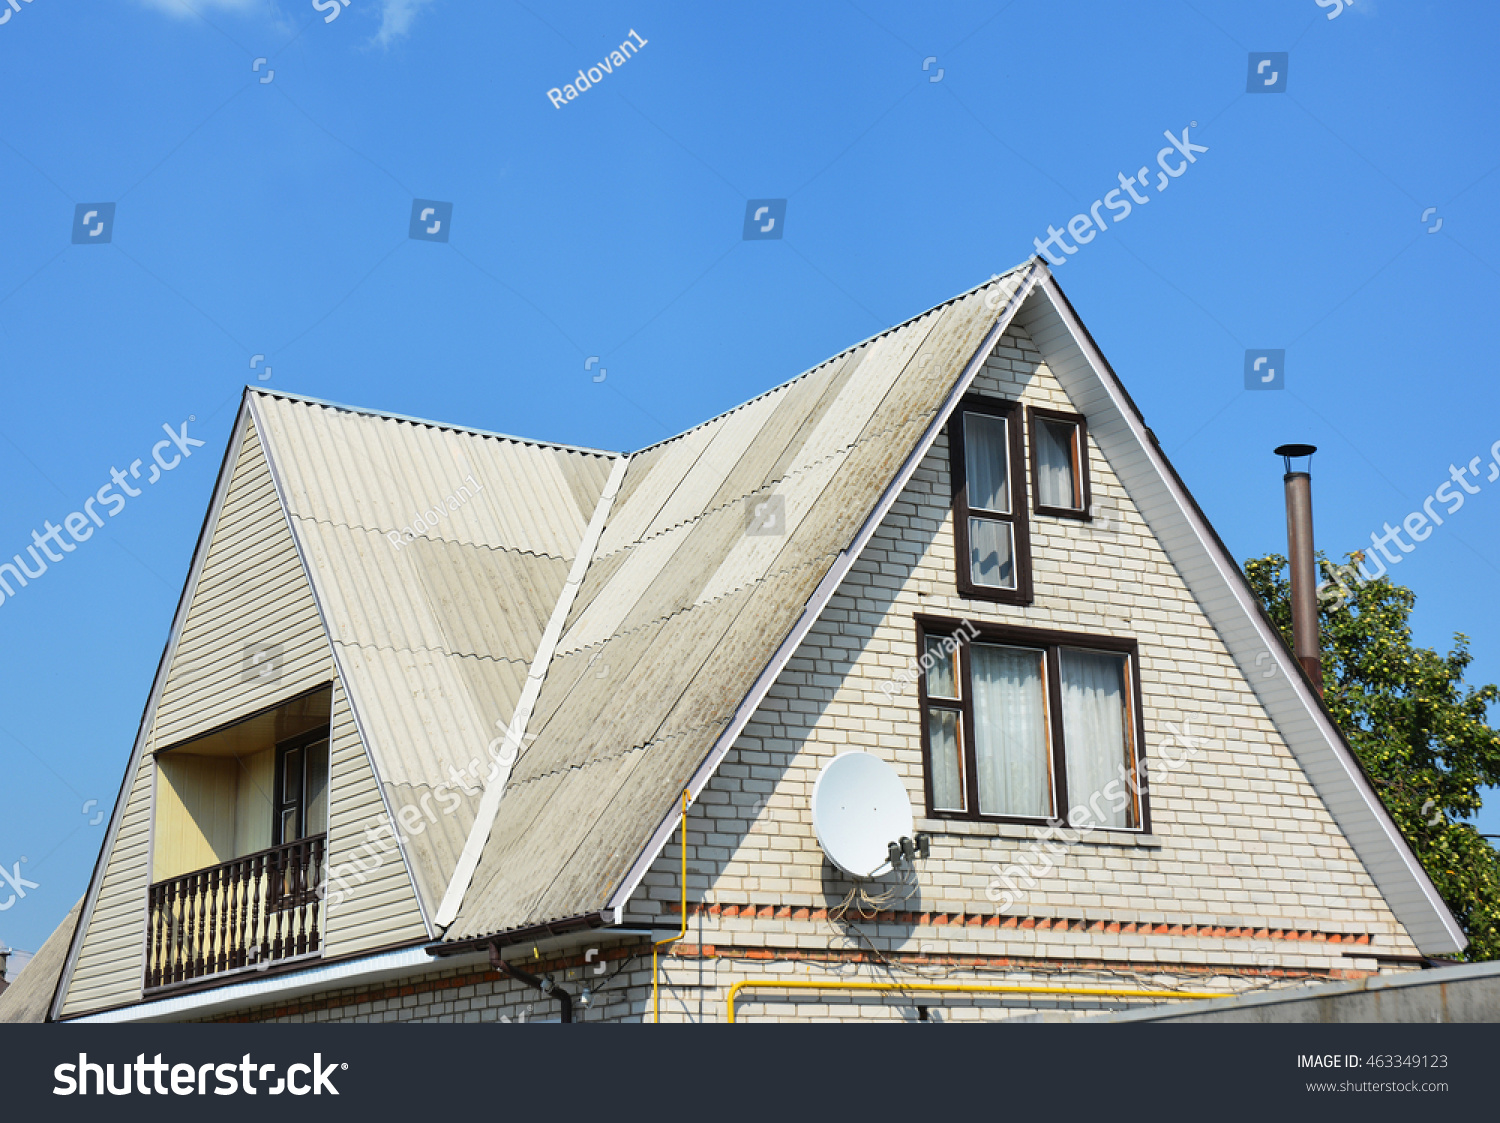 Gable valley type roof construction building stock photo for Brick house construction